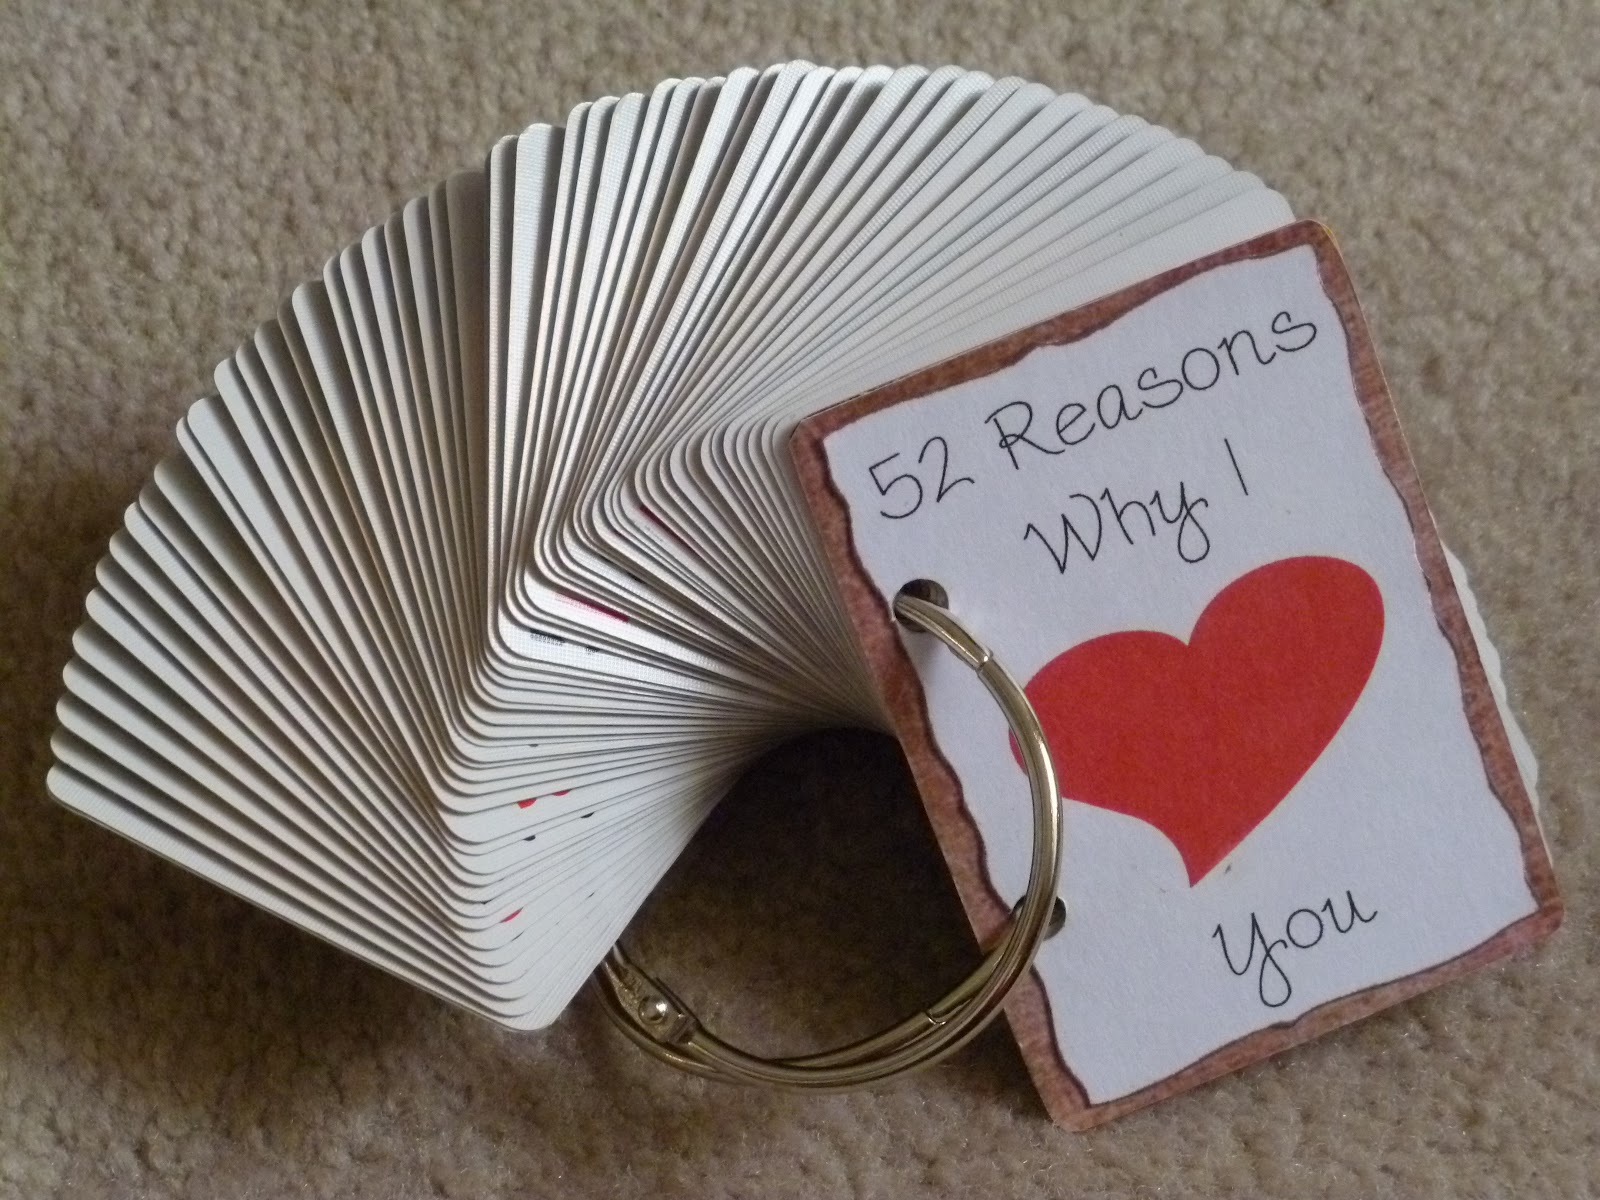 52 Reasons Why I Love You List For Mom 52 reasons.